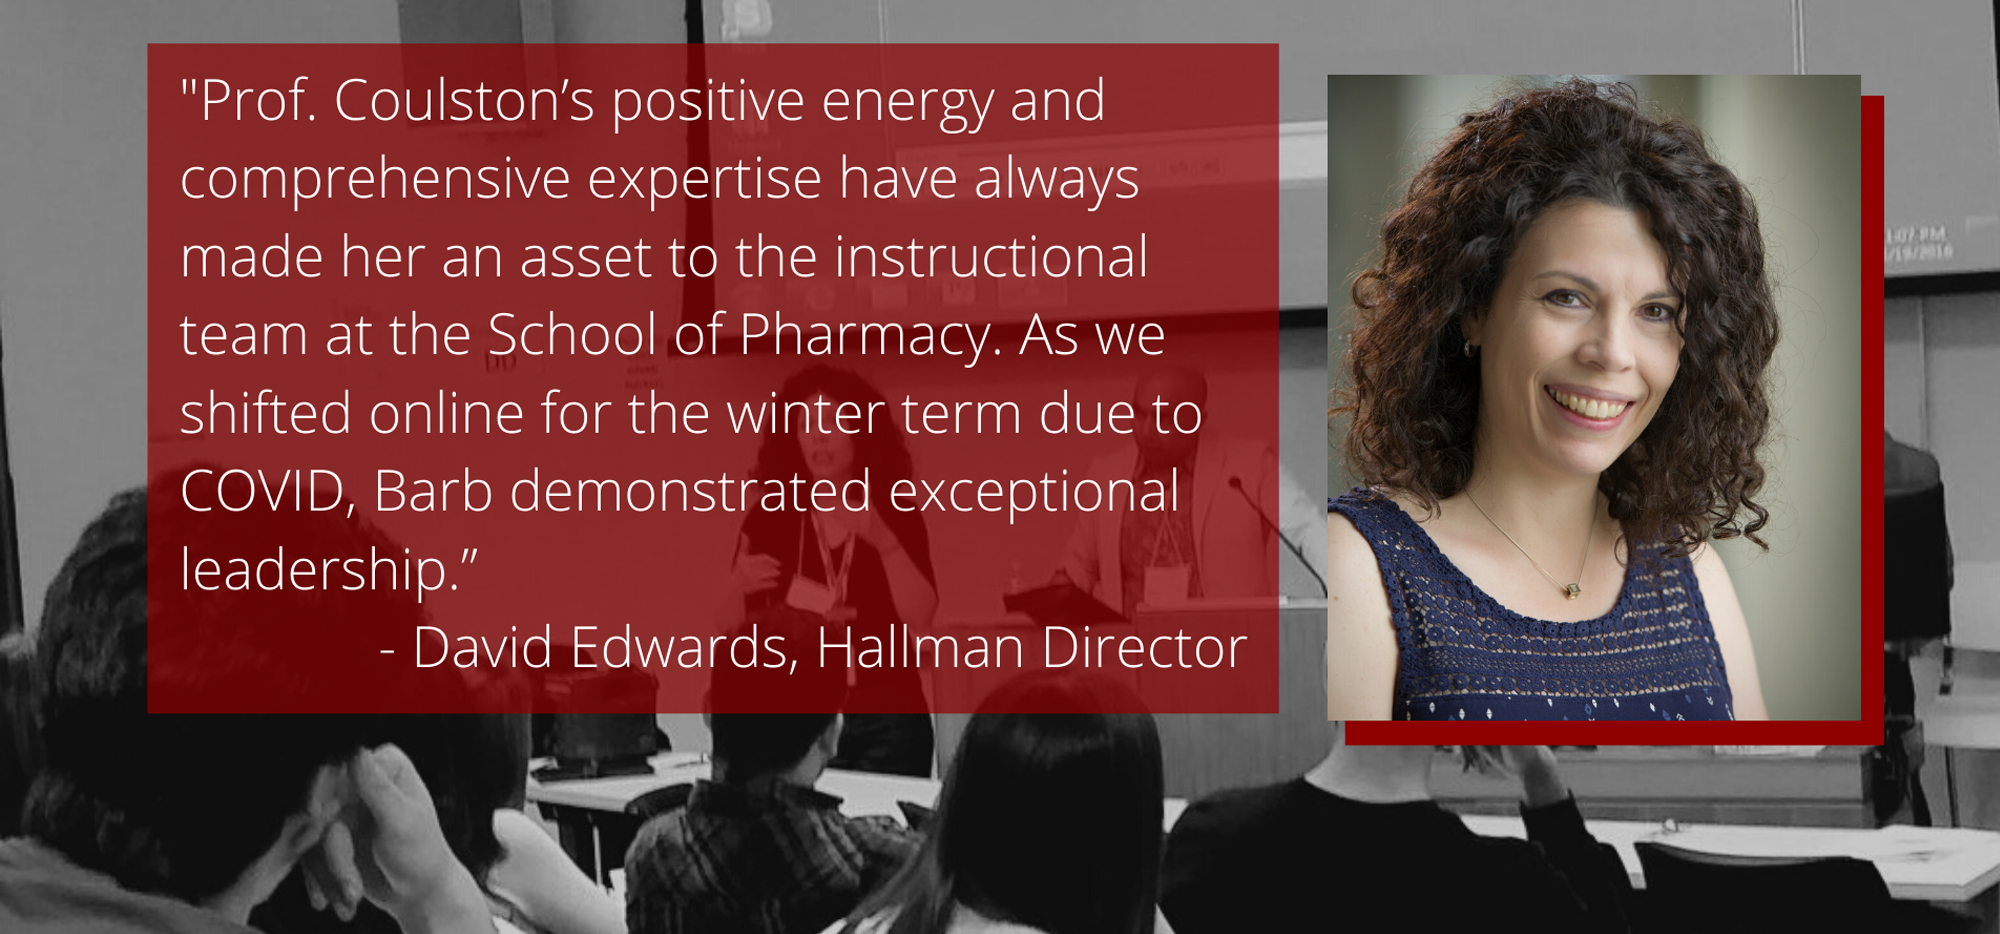 """Prof Coulston's posoitive energy and comprehensive experrtise have made her an asset to the School"" - David Edwards, Director"